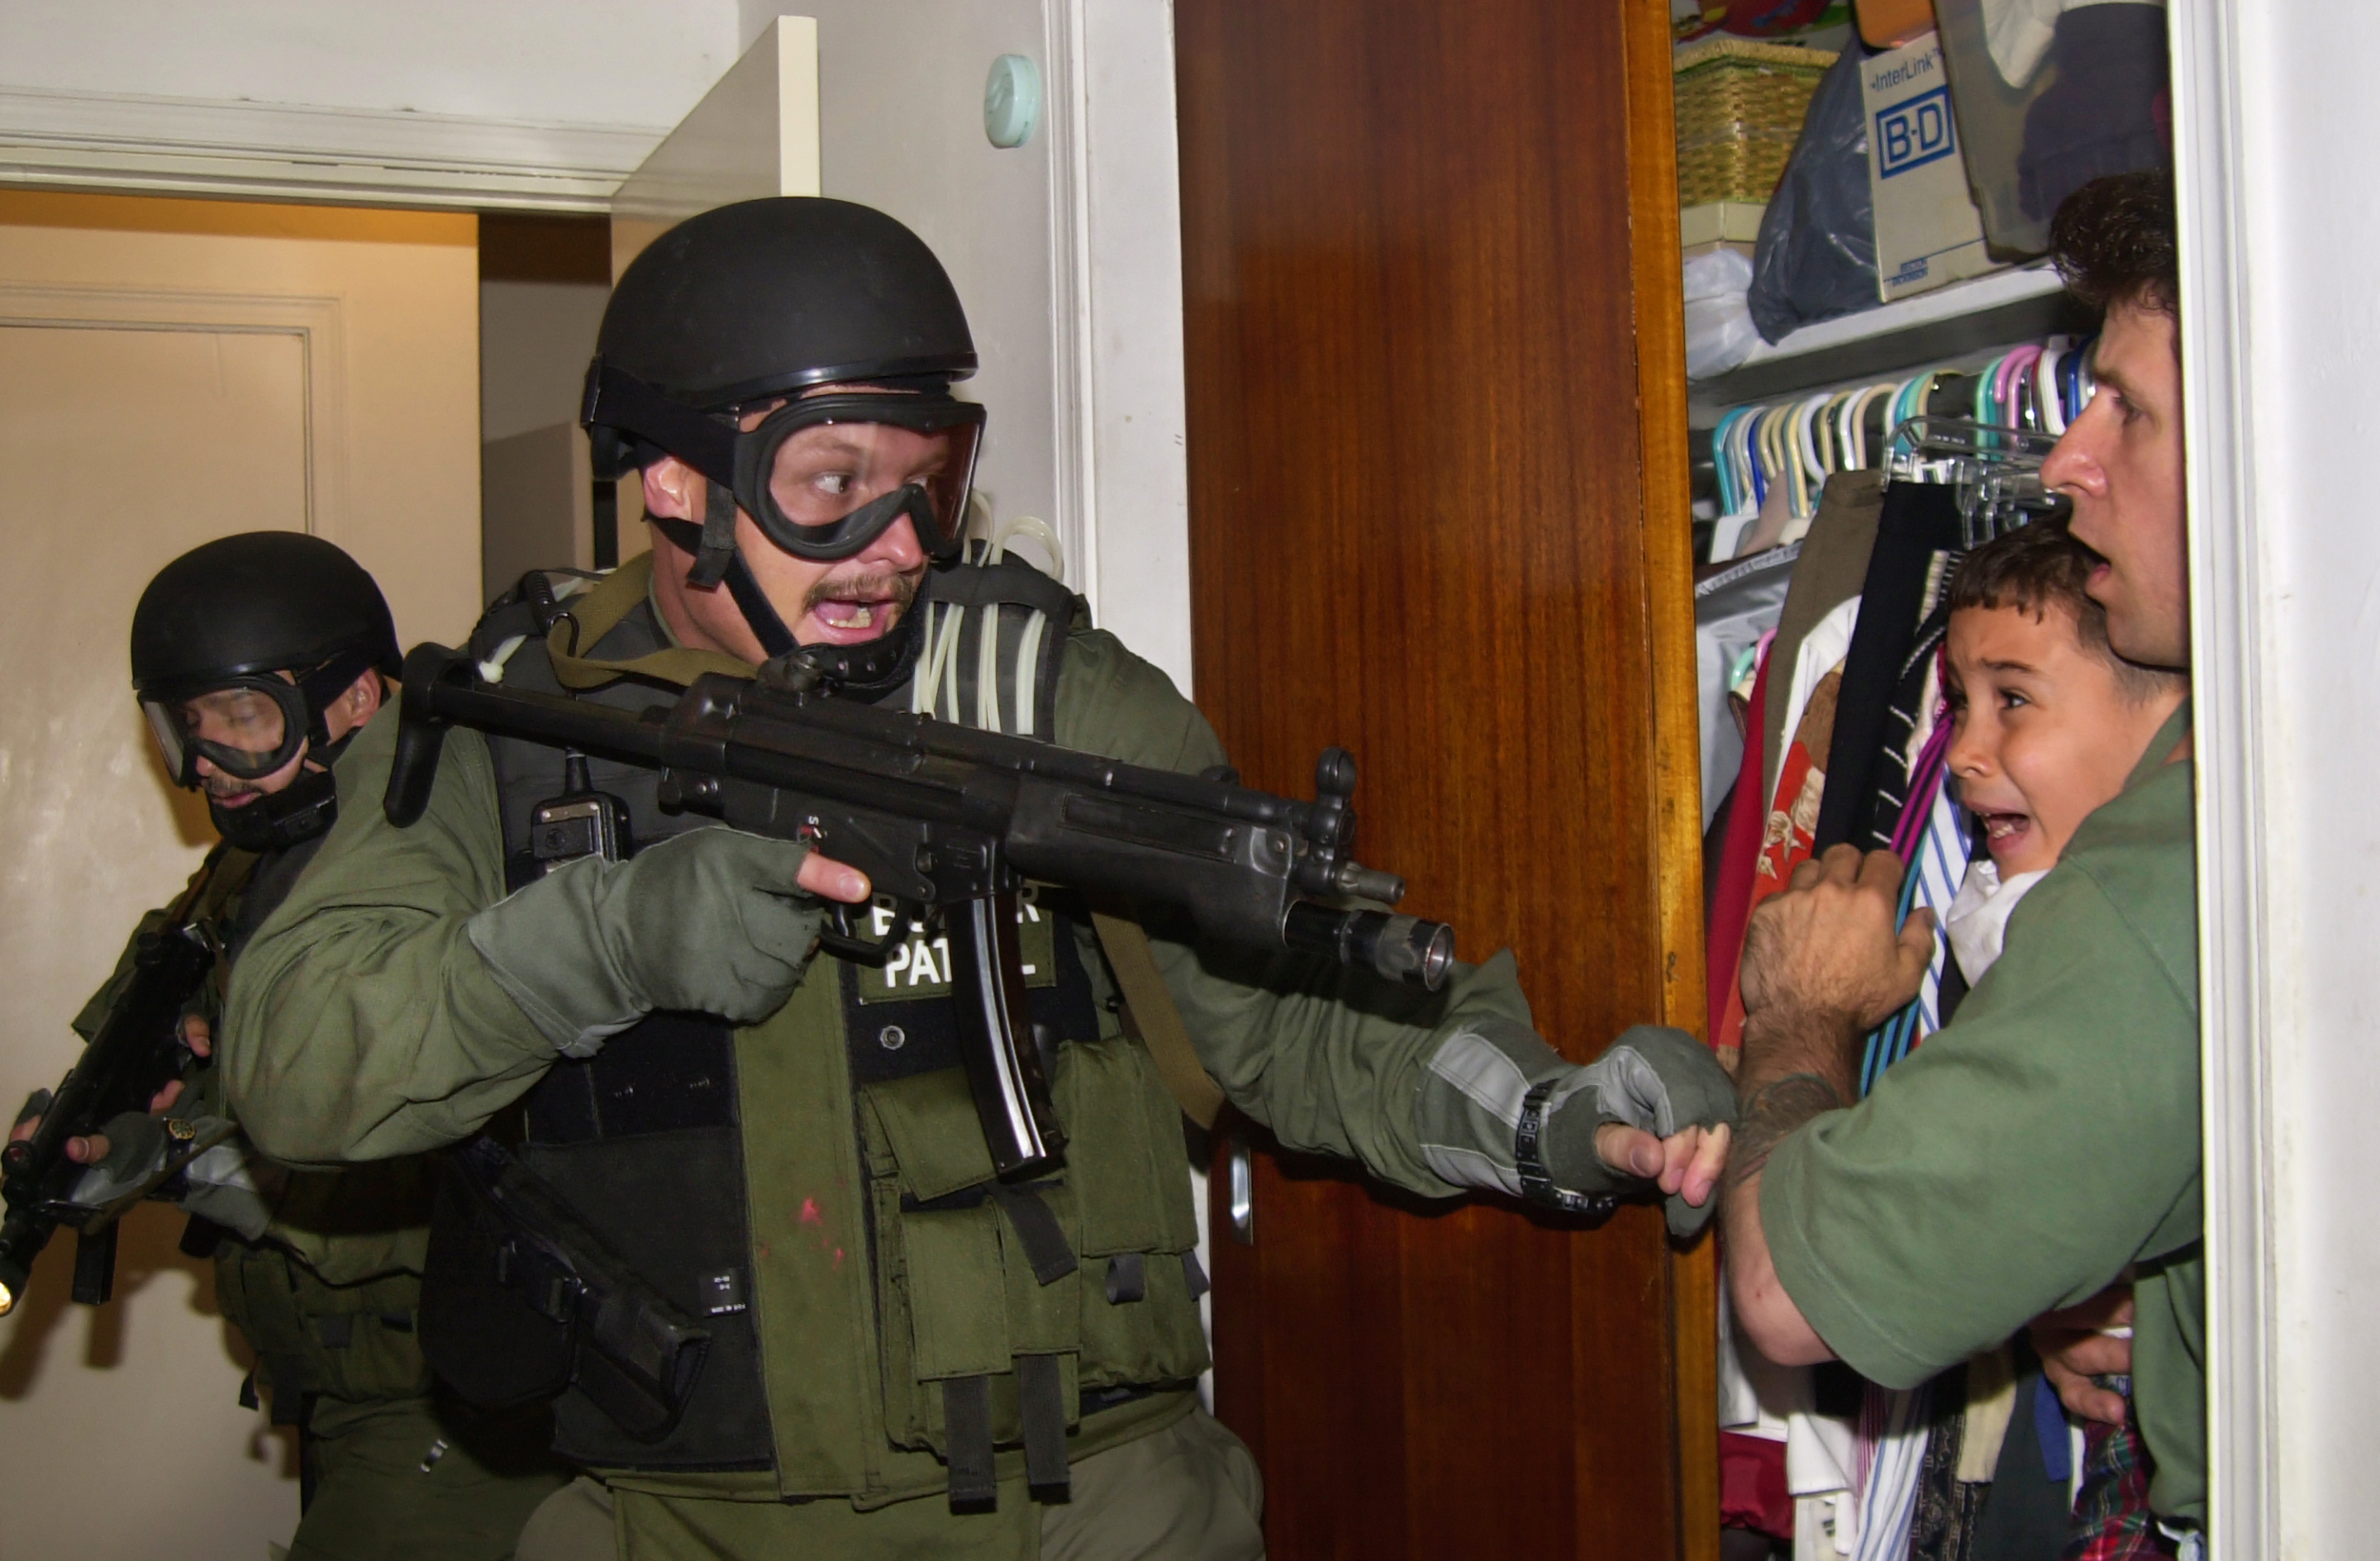 Armed federal agents enter the bedroom of a home in Miami's Little Havana on April 22, 2000, as 6-year-old Elian Gonzalez is held in a closet by Donato Dalrymple, one of the two men who rescued the boy from the ocean months earlier. The agents took custody of Elian at the home of his Miami relatives, eventually repatriating him to Cuba with his father. (AP Photo/Alan Diaz)